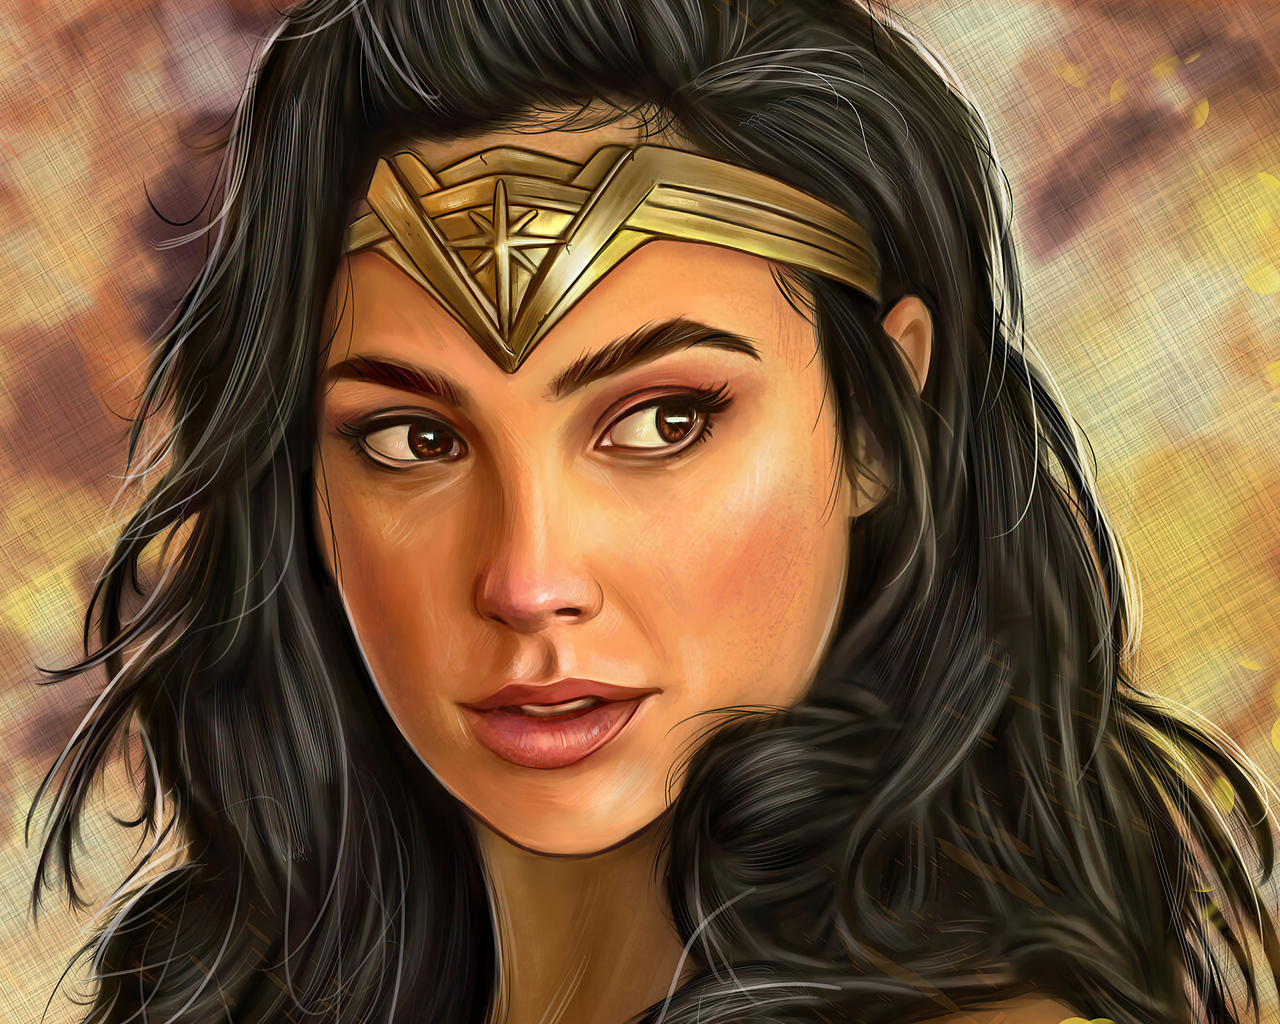 wonder-woman-1984-artwork-2020-2e.jpg